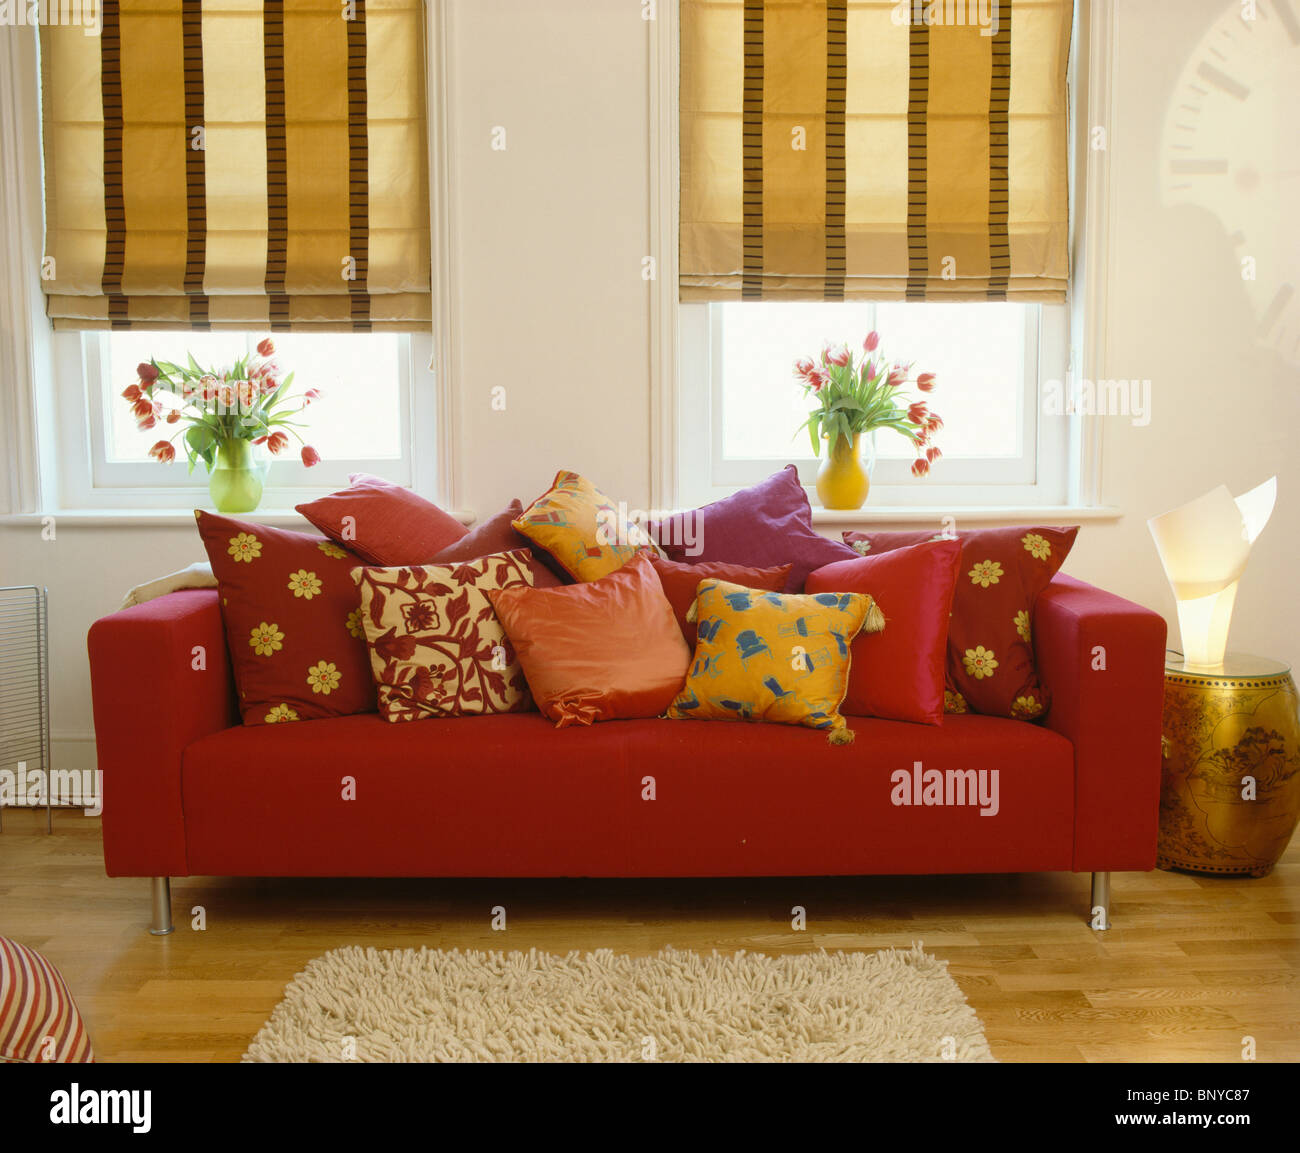 Cuscini Divano Rossi.Wide Striped Beige Blinds On Windows Above Red Sofa Piled With